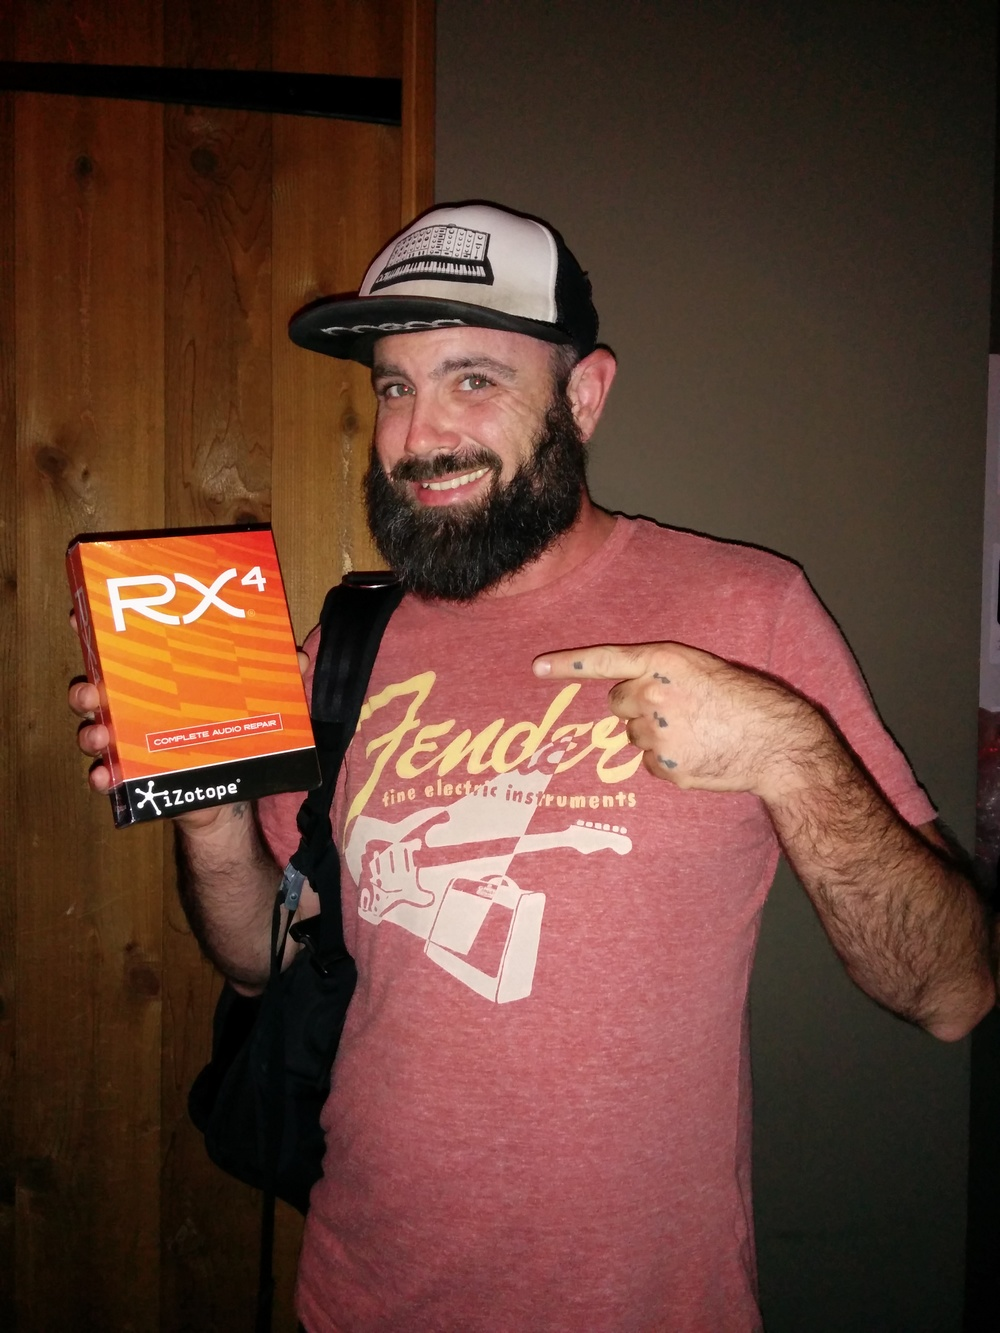 Another winner of iZotope RX4